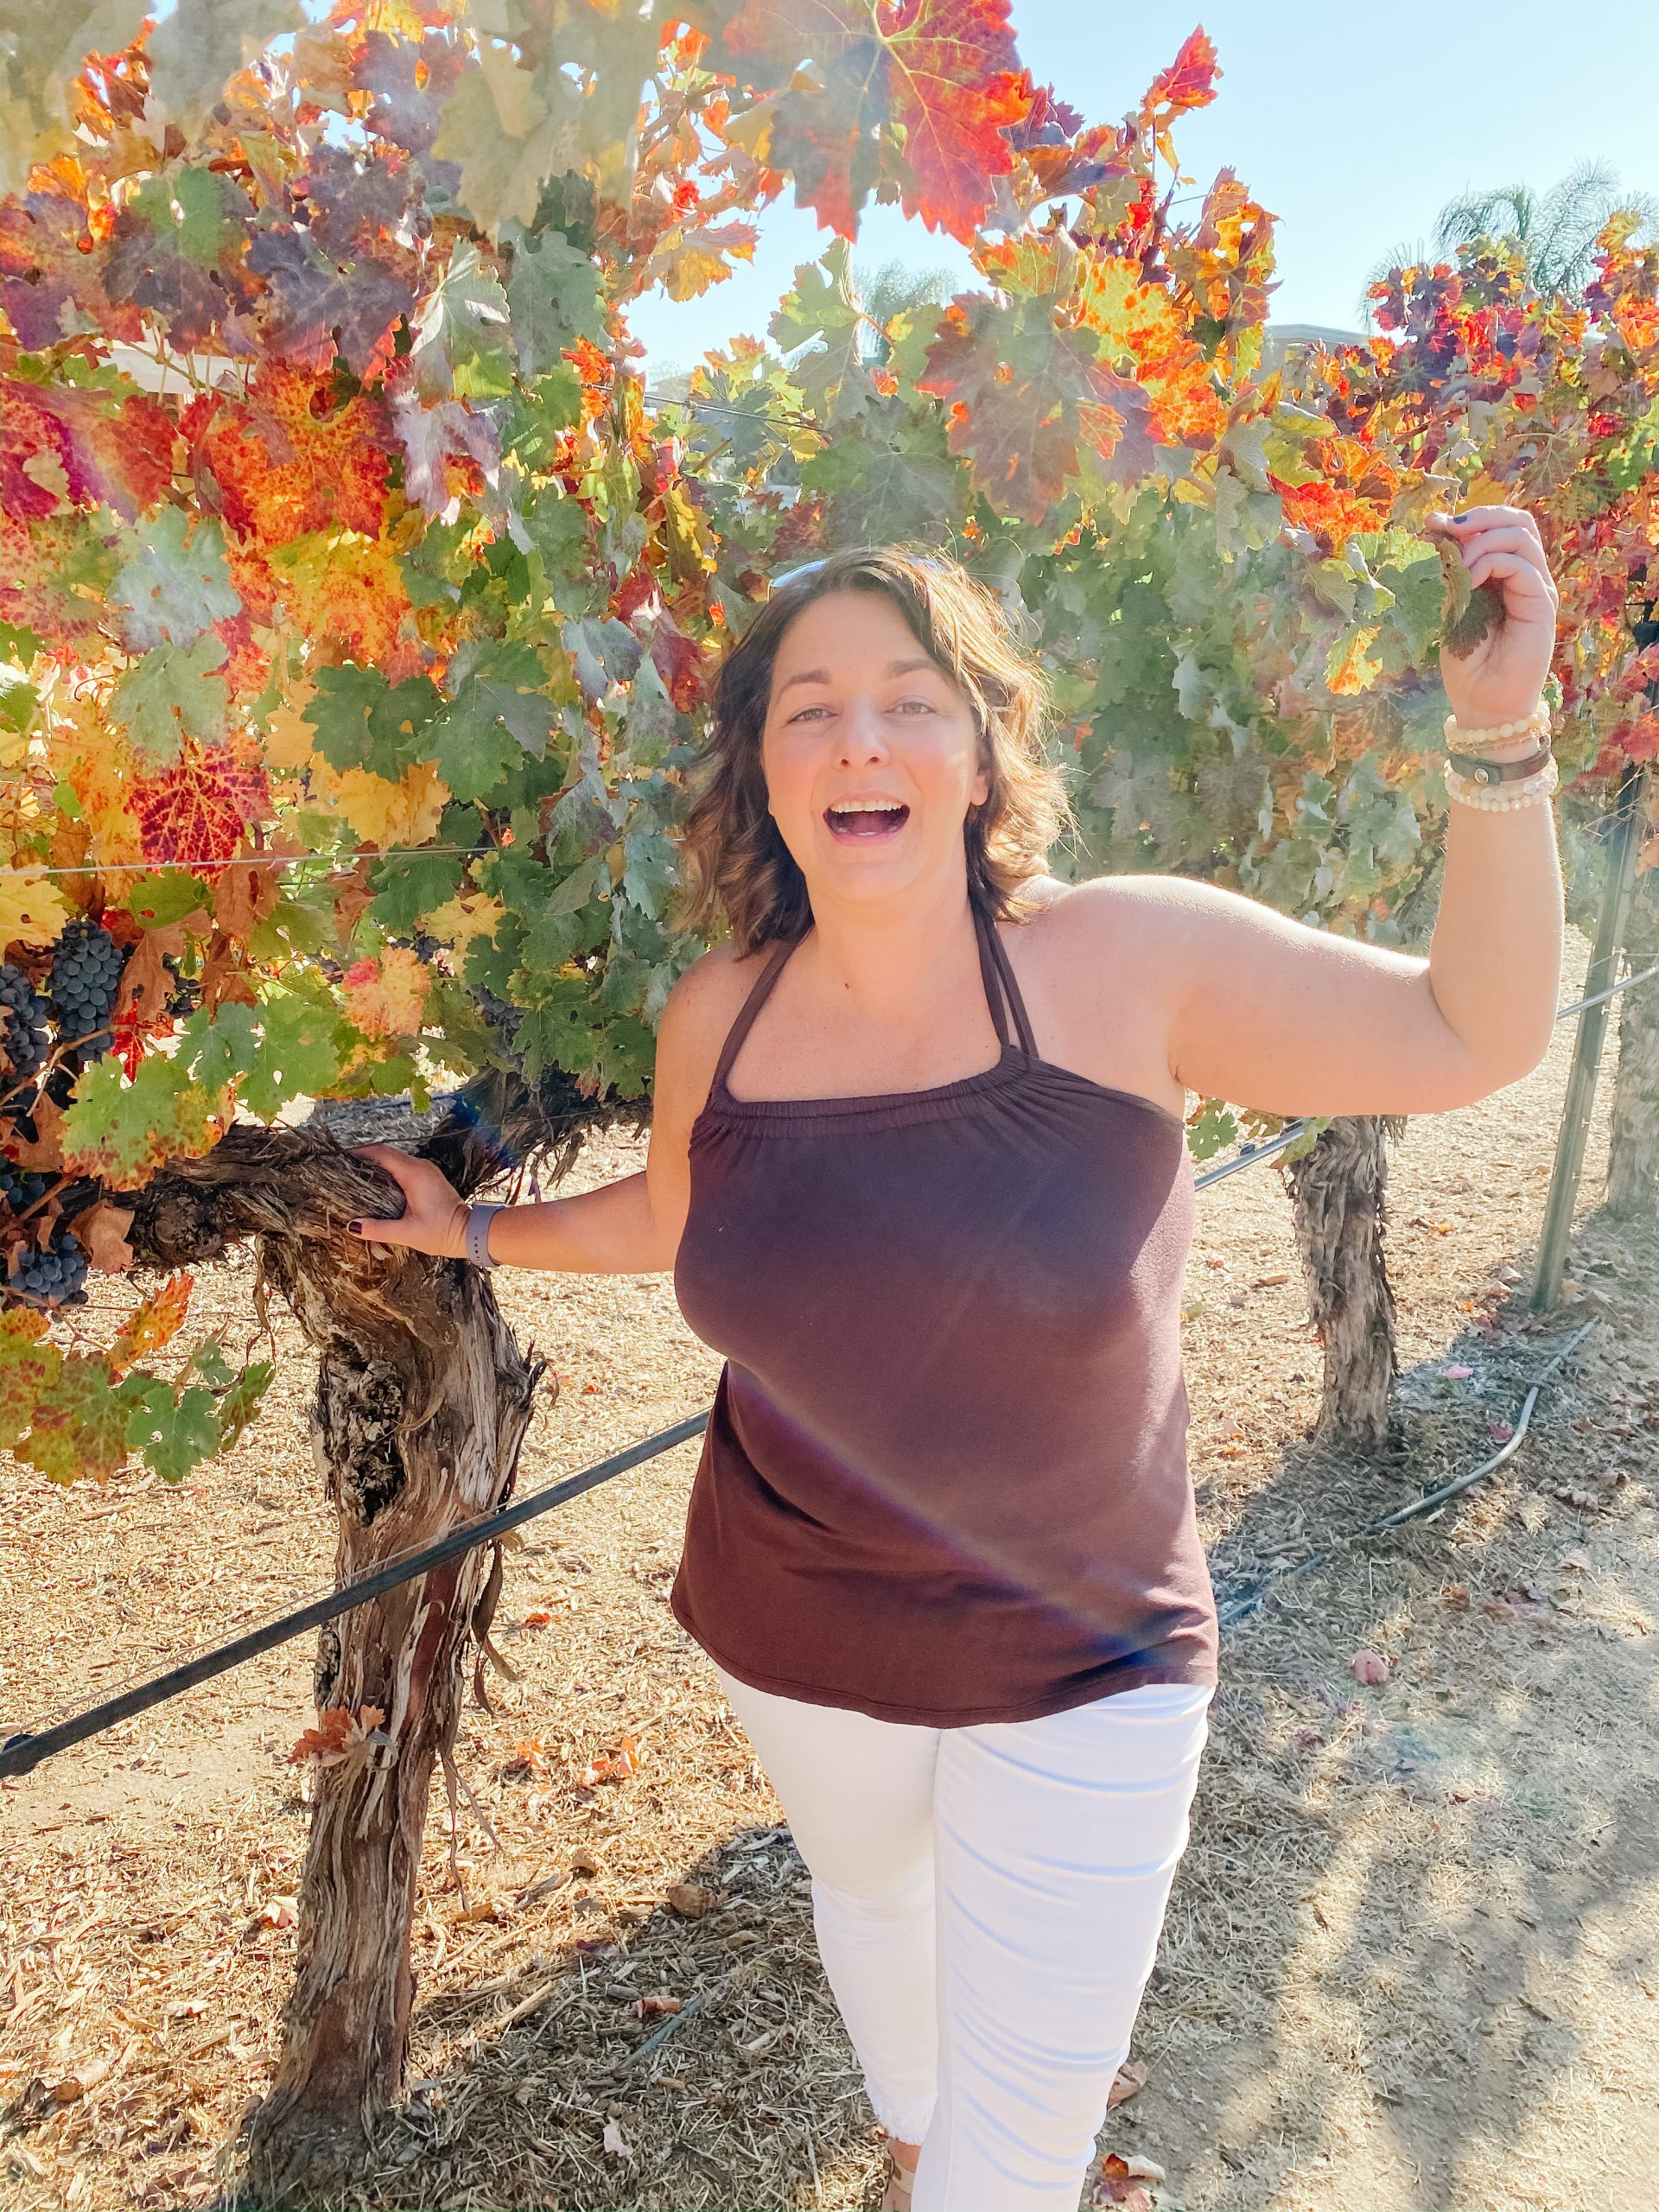 The Bubbly Side of Life in the Wilson Creek Winery vineyards